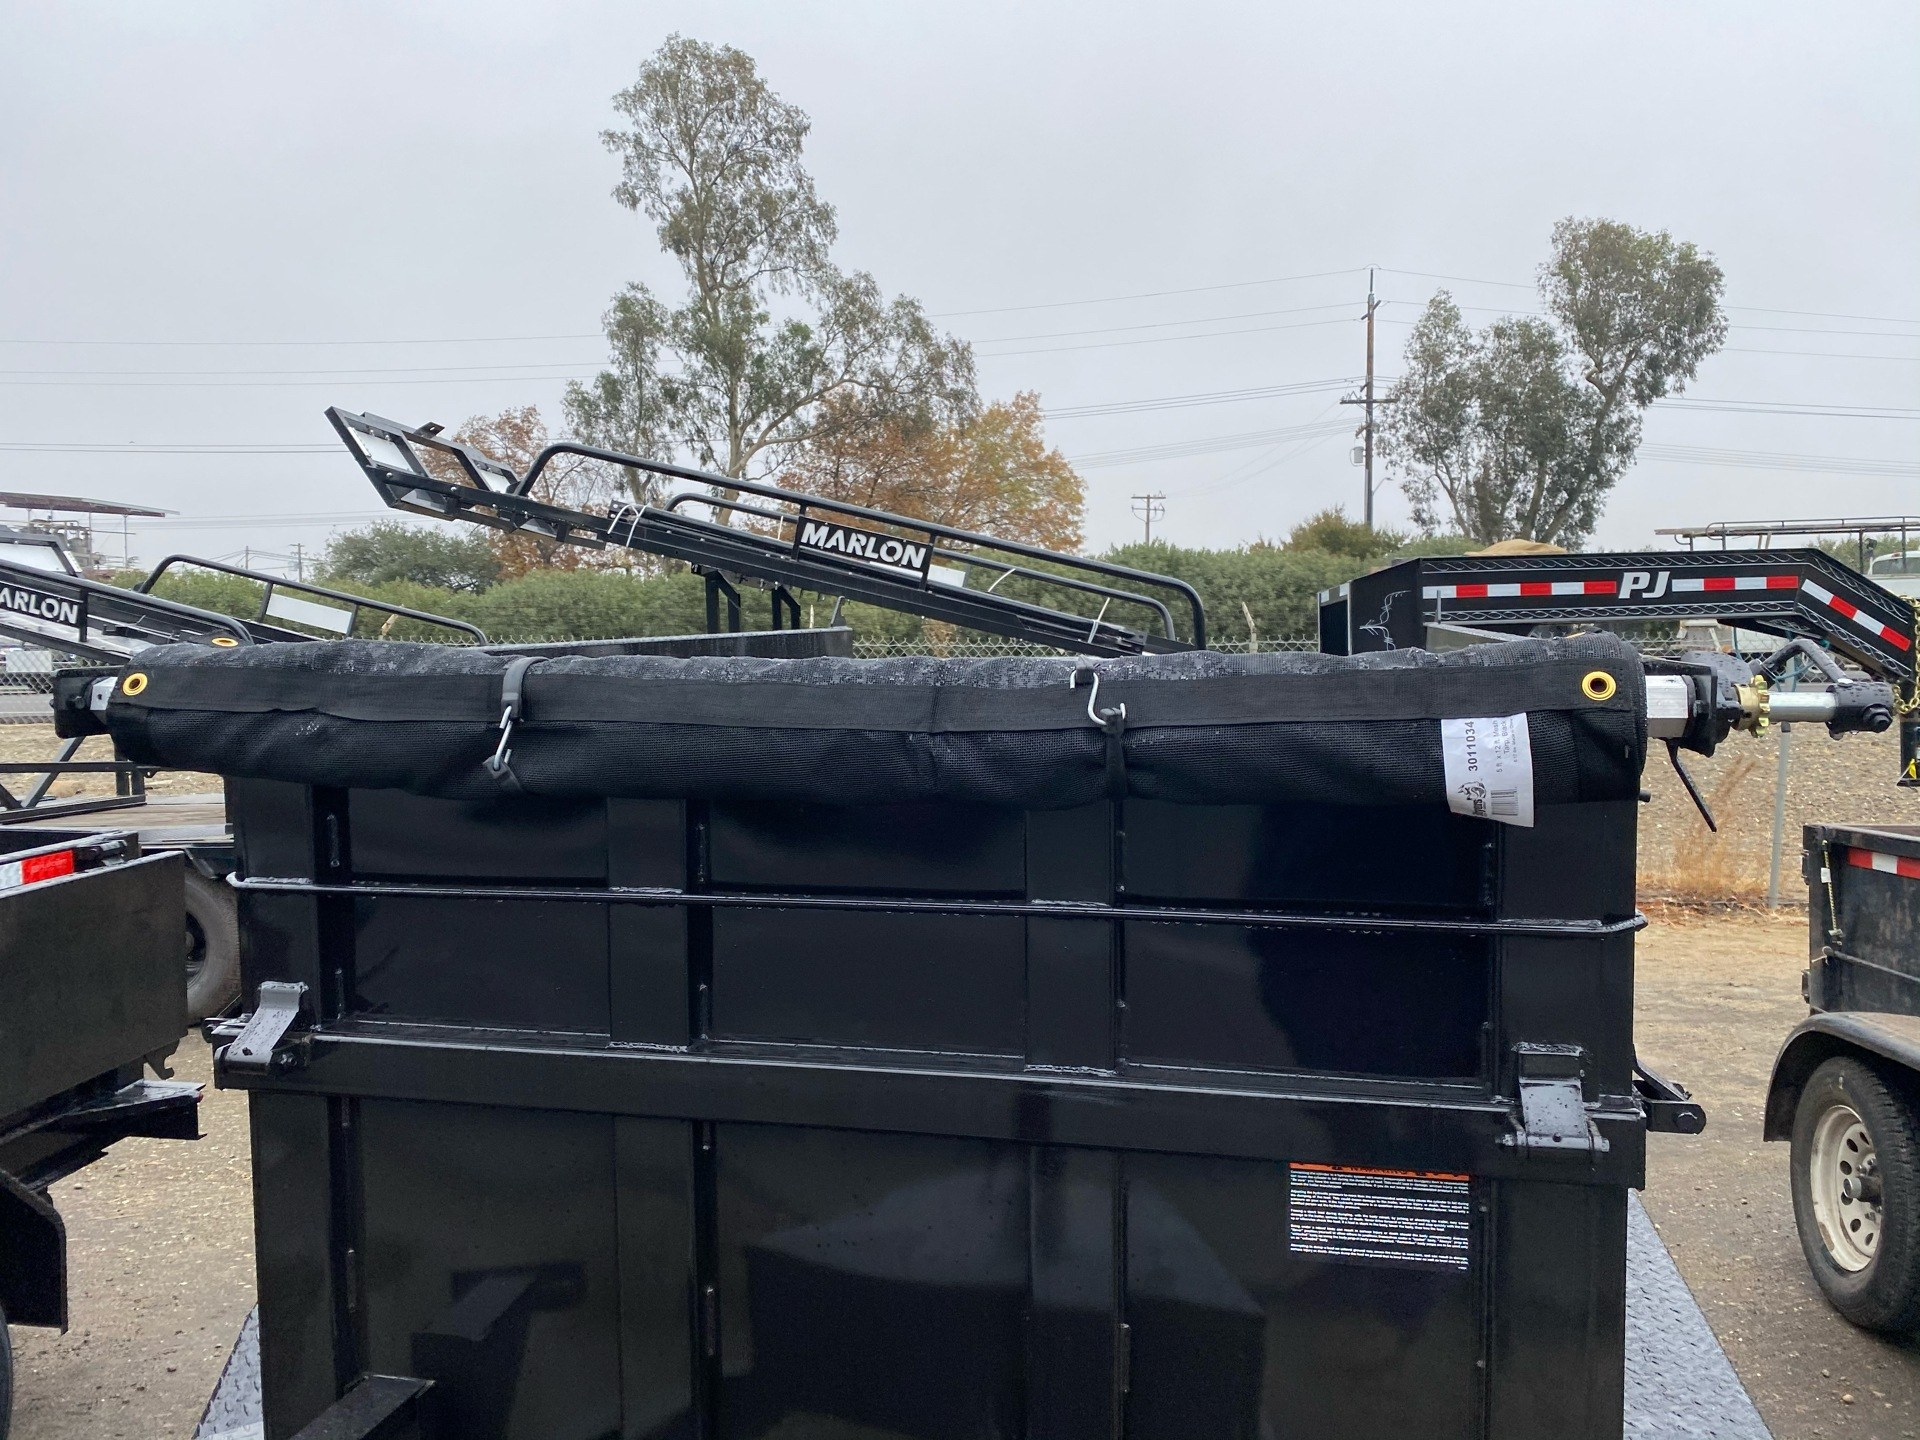 2021 Playcraft Trailers 8' X 5' Dump Trailer w/ Fold Down Sides in Acampo, California - Photo 3